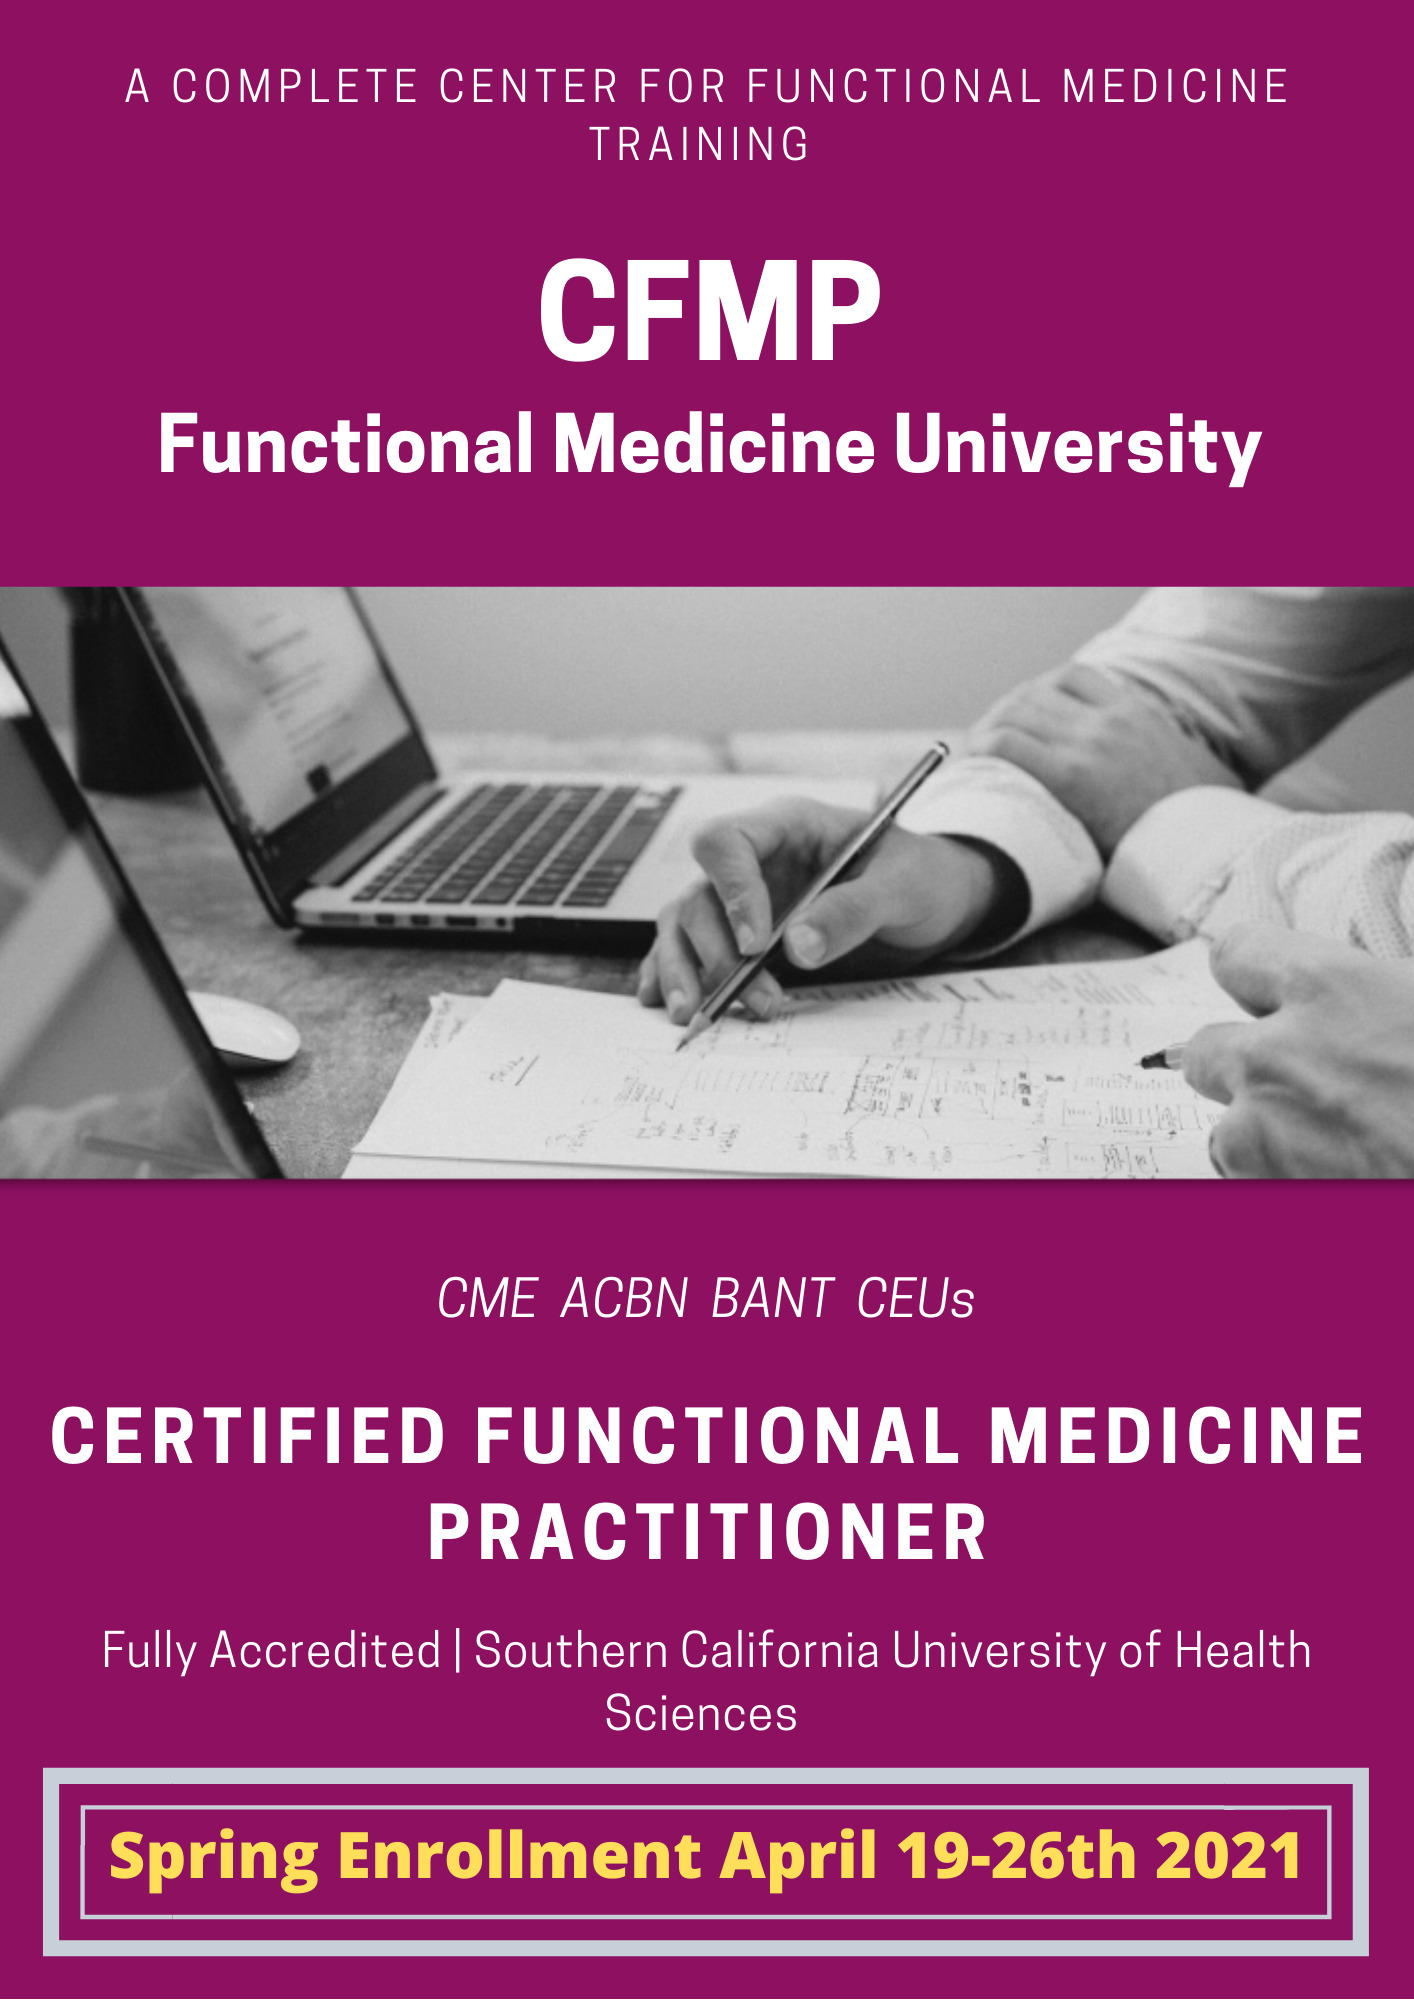 CFMP Spring Enrollment at FMU